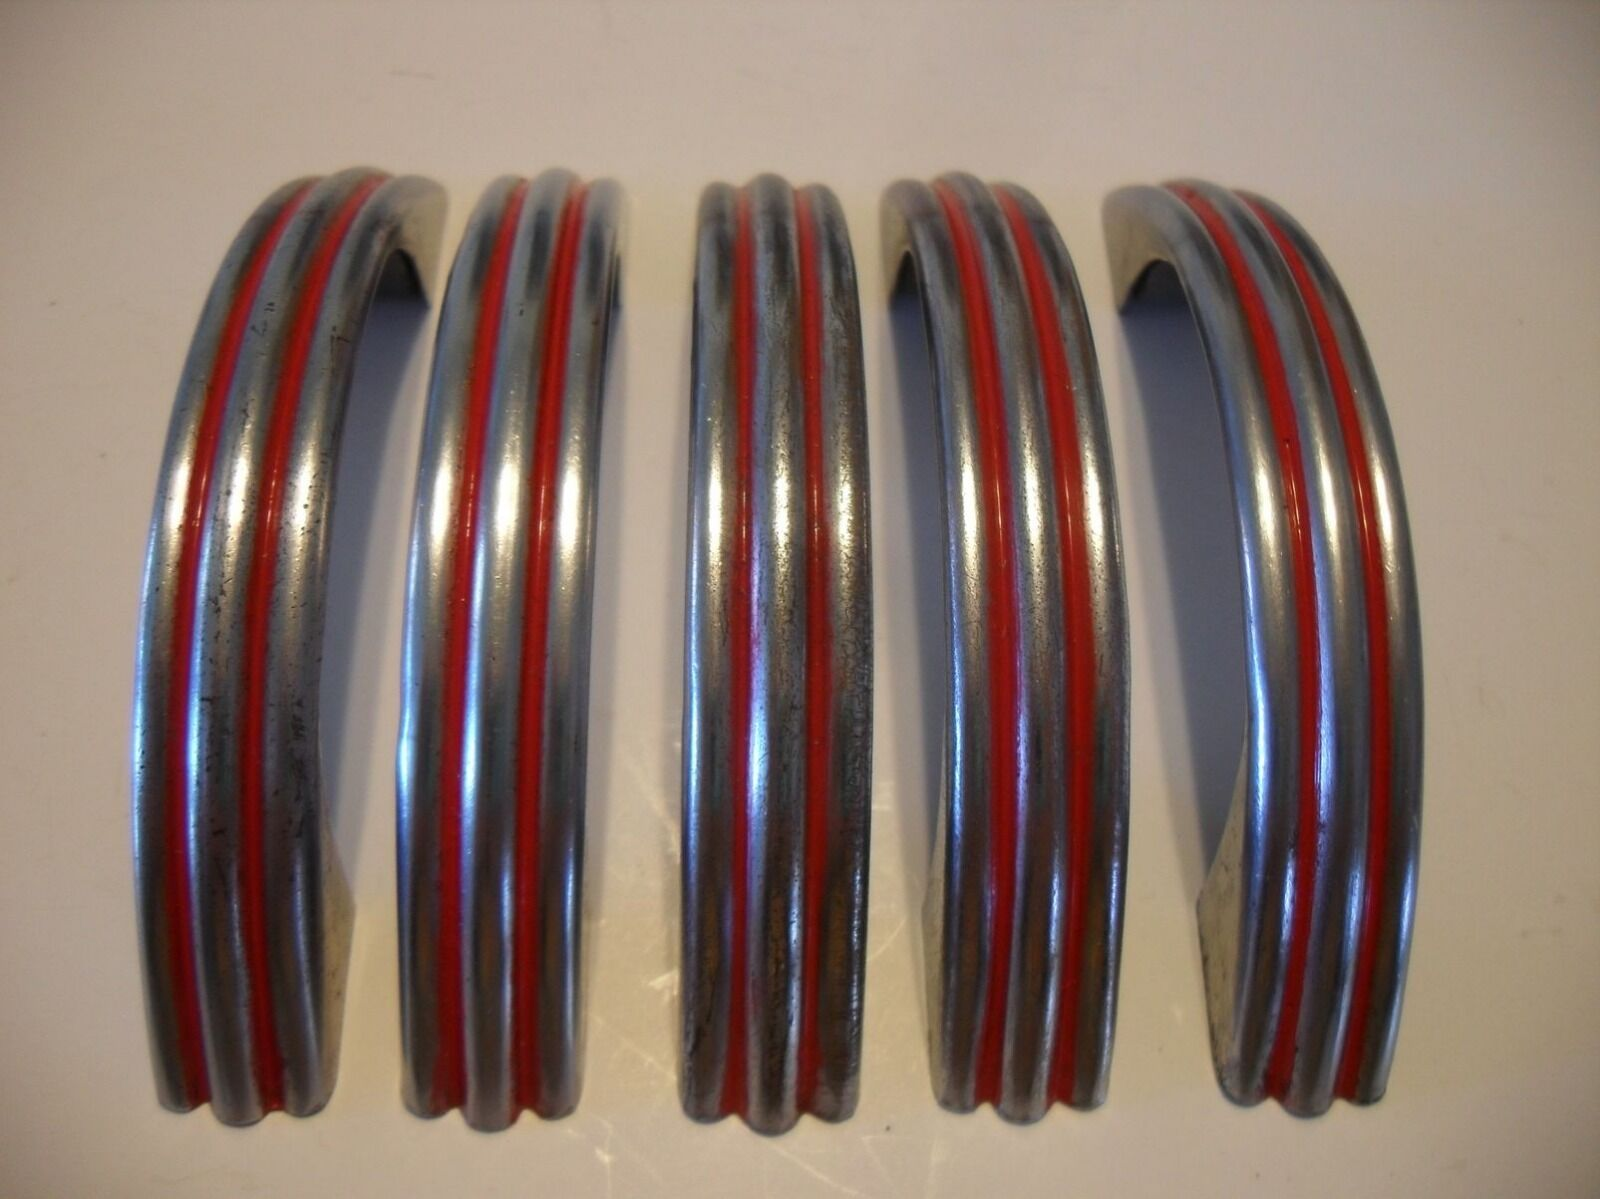 5 VINTAGE 1940's CHROME Steel Drawer Pulls RED Lines Ribbed Cabinet Door Handles